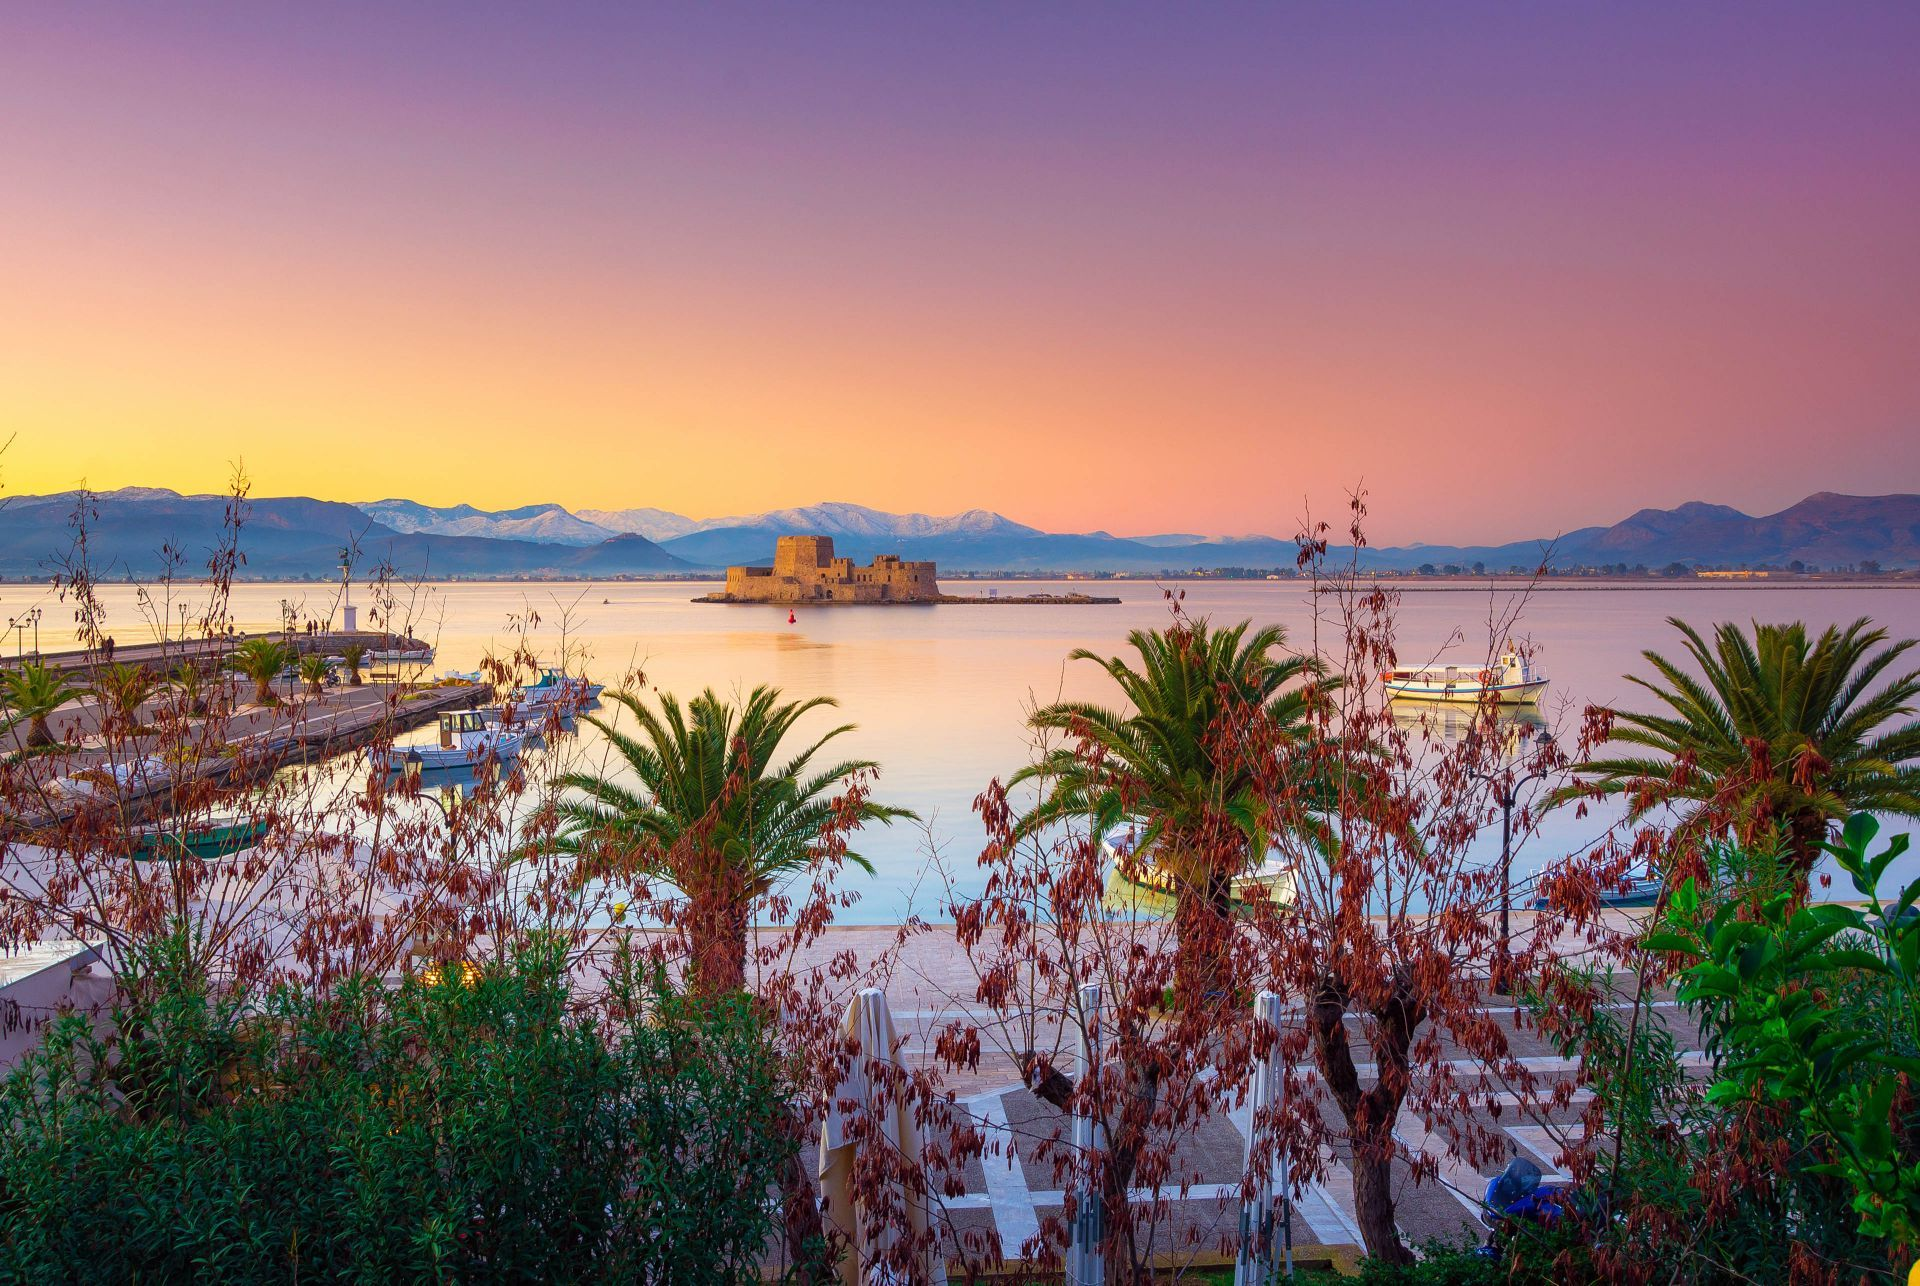 Accommodation and hotels in Nafplion